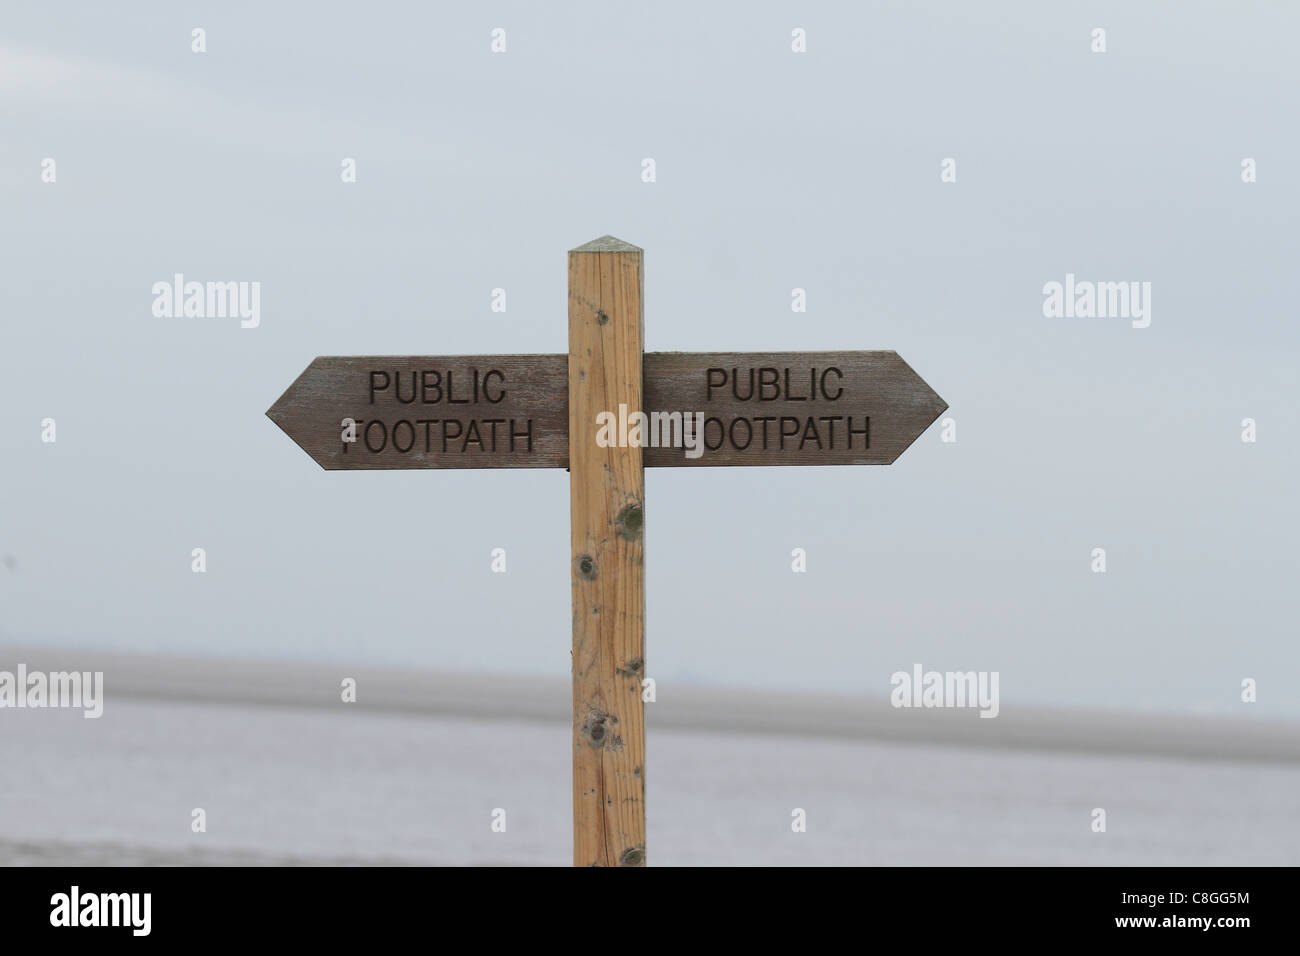 wooden public footpath signpost - Stock Image